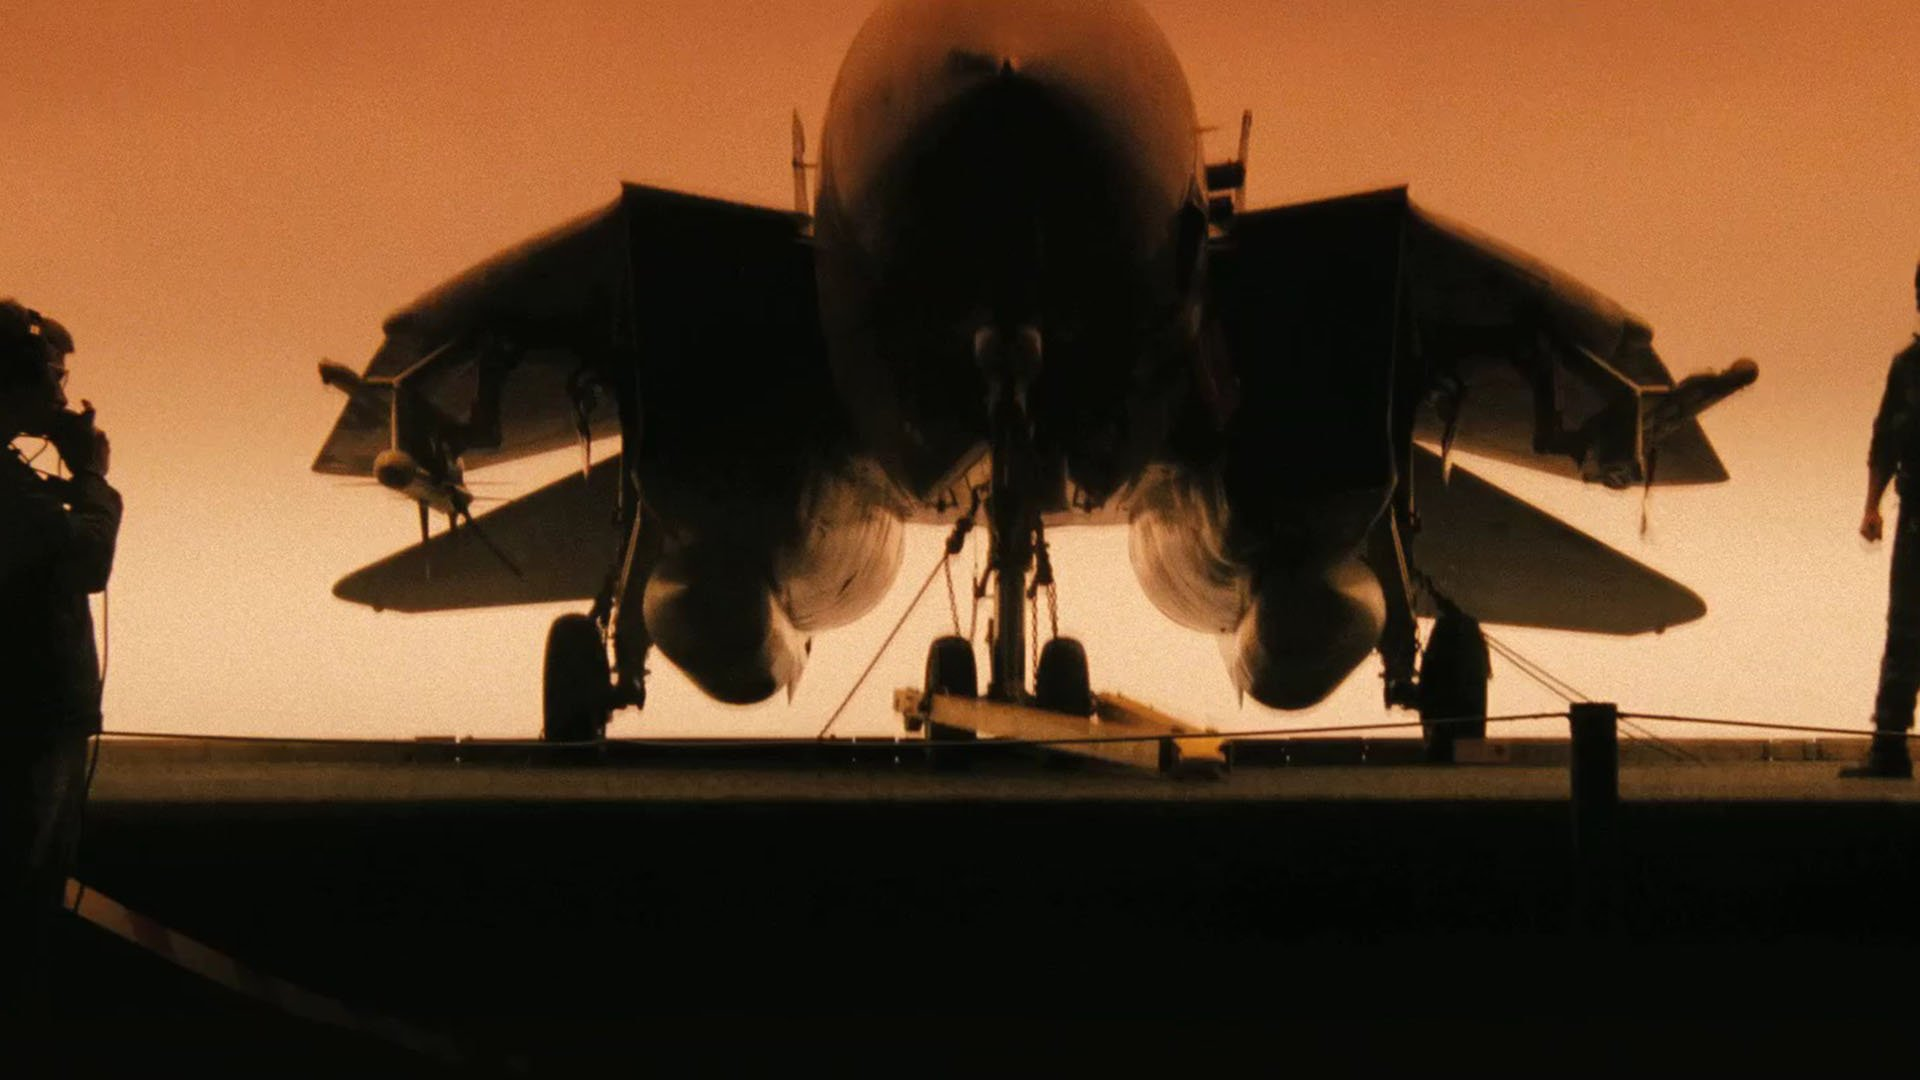 Top Gun Desktop Wallpapers for HD Widescreen and Mobile Page 1920x1080